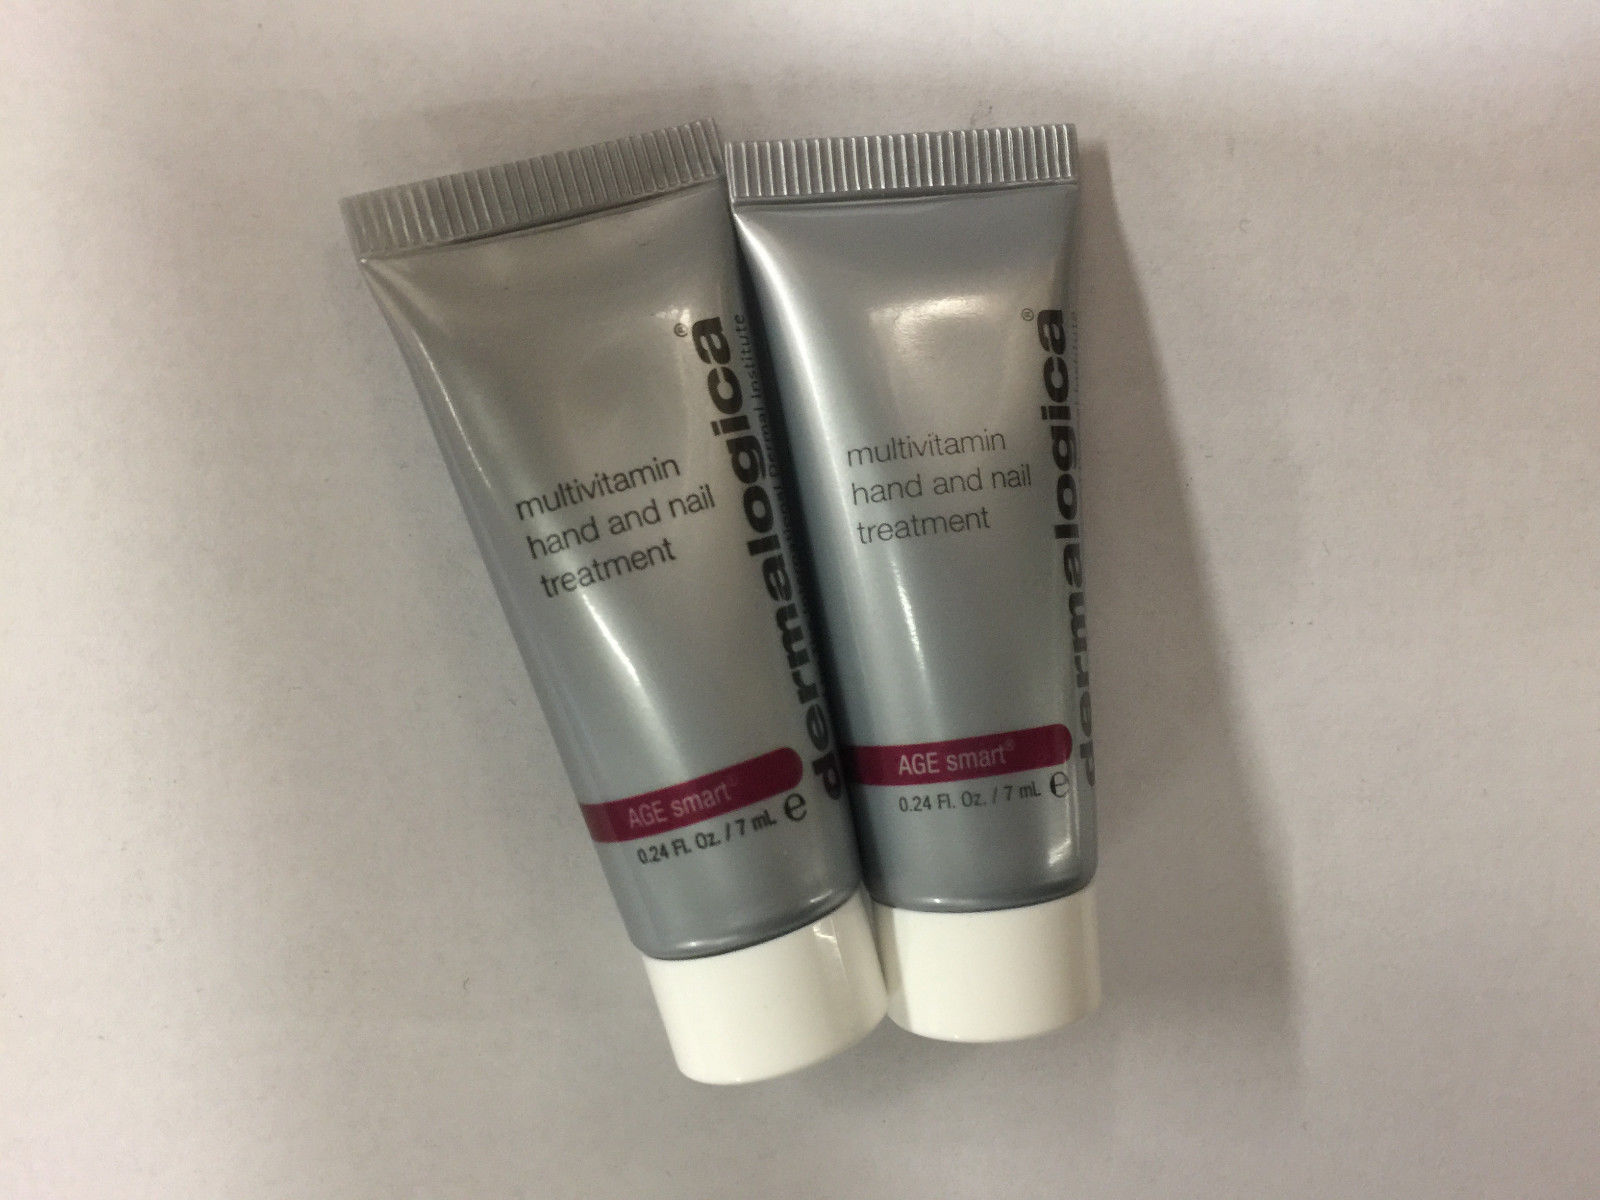 Lot Of 2 Dermalogica Age Smart Multivitamin Hand And Nail Treatment ...